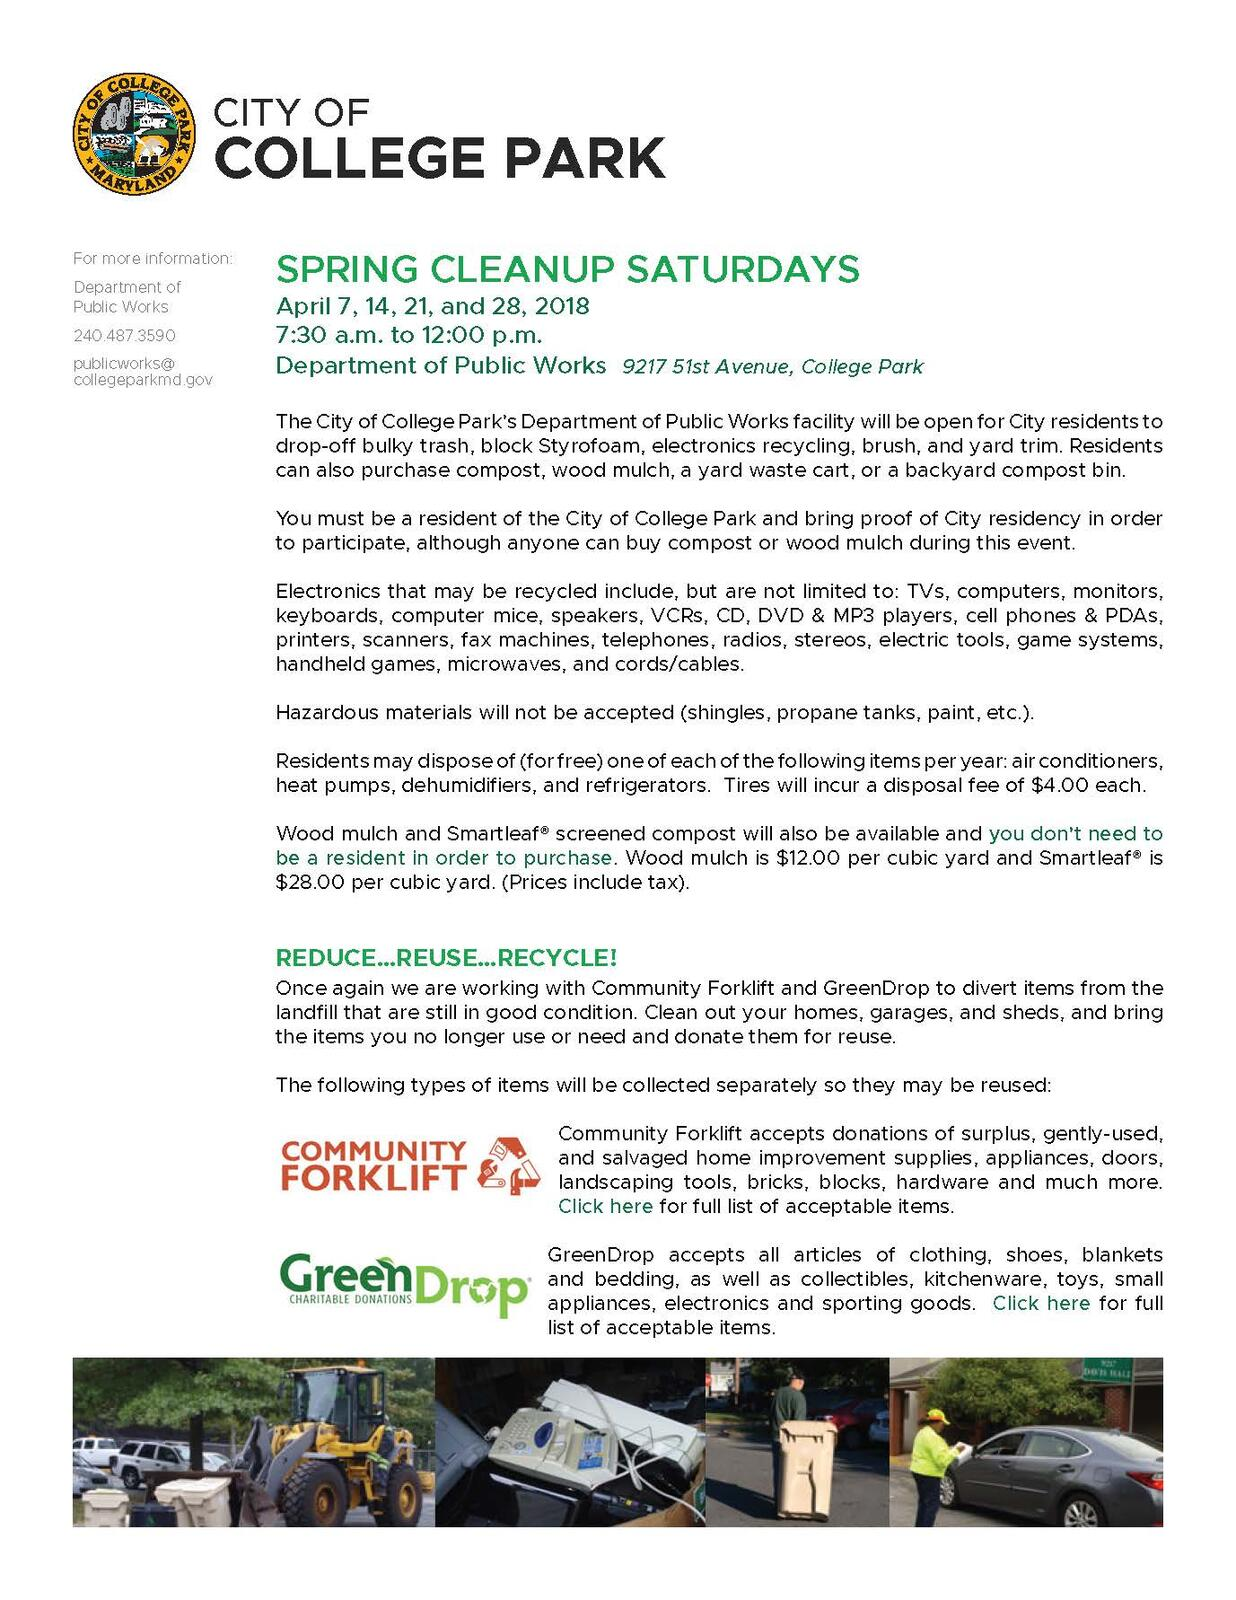 City Department of Public Works Spring Cleanup Saturdays